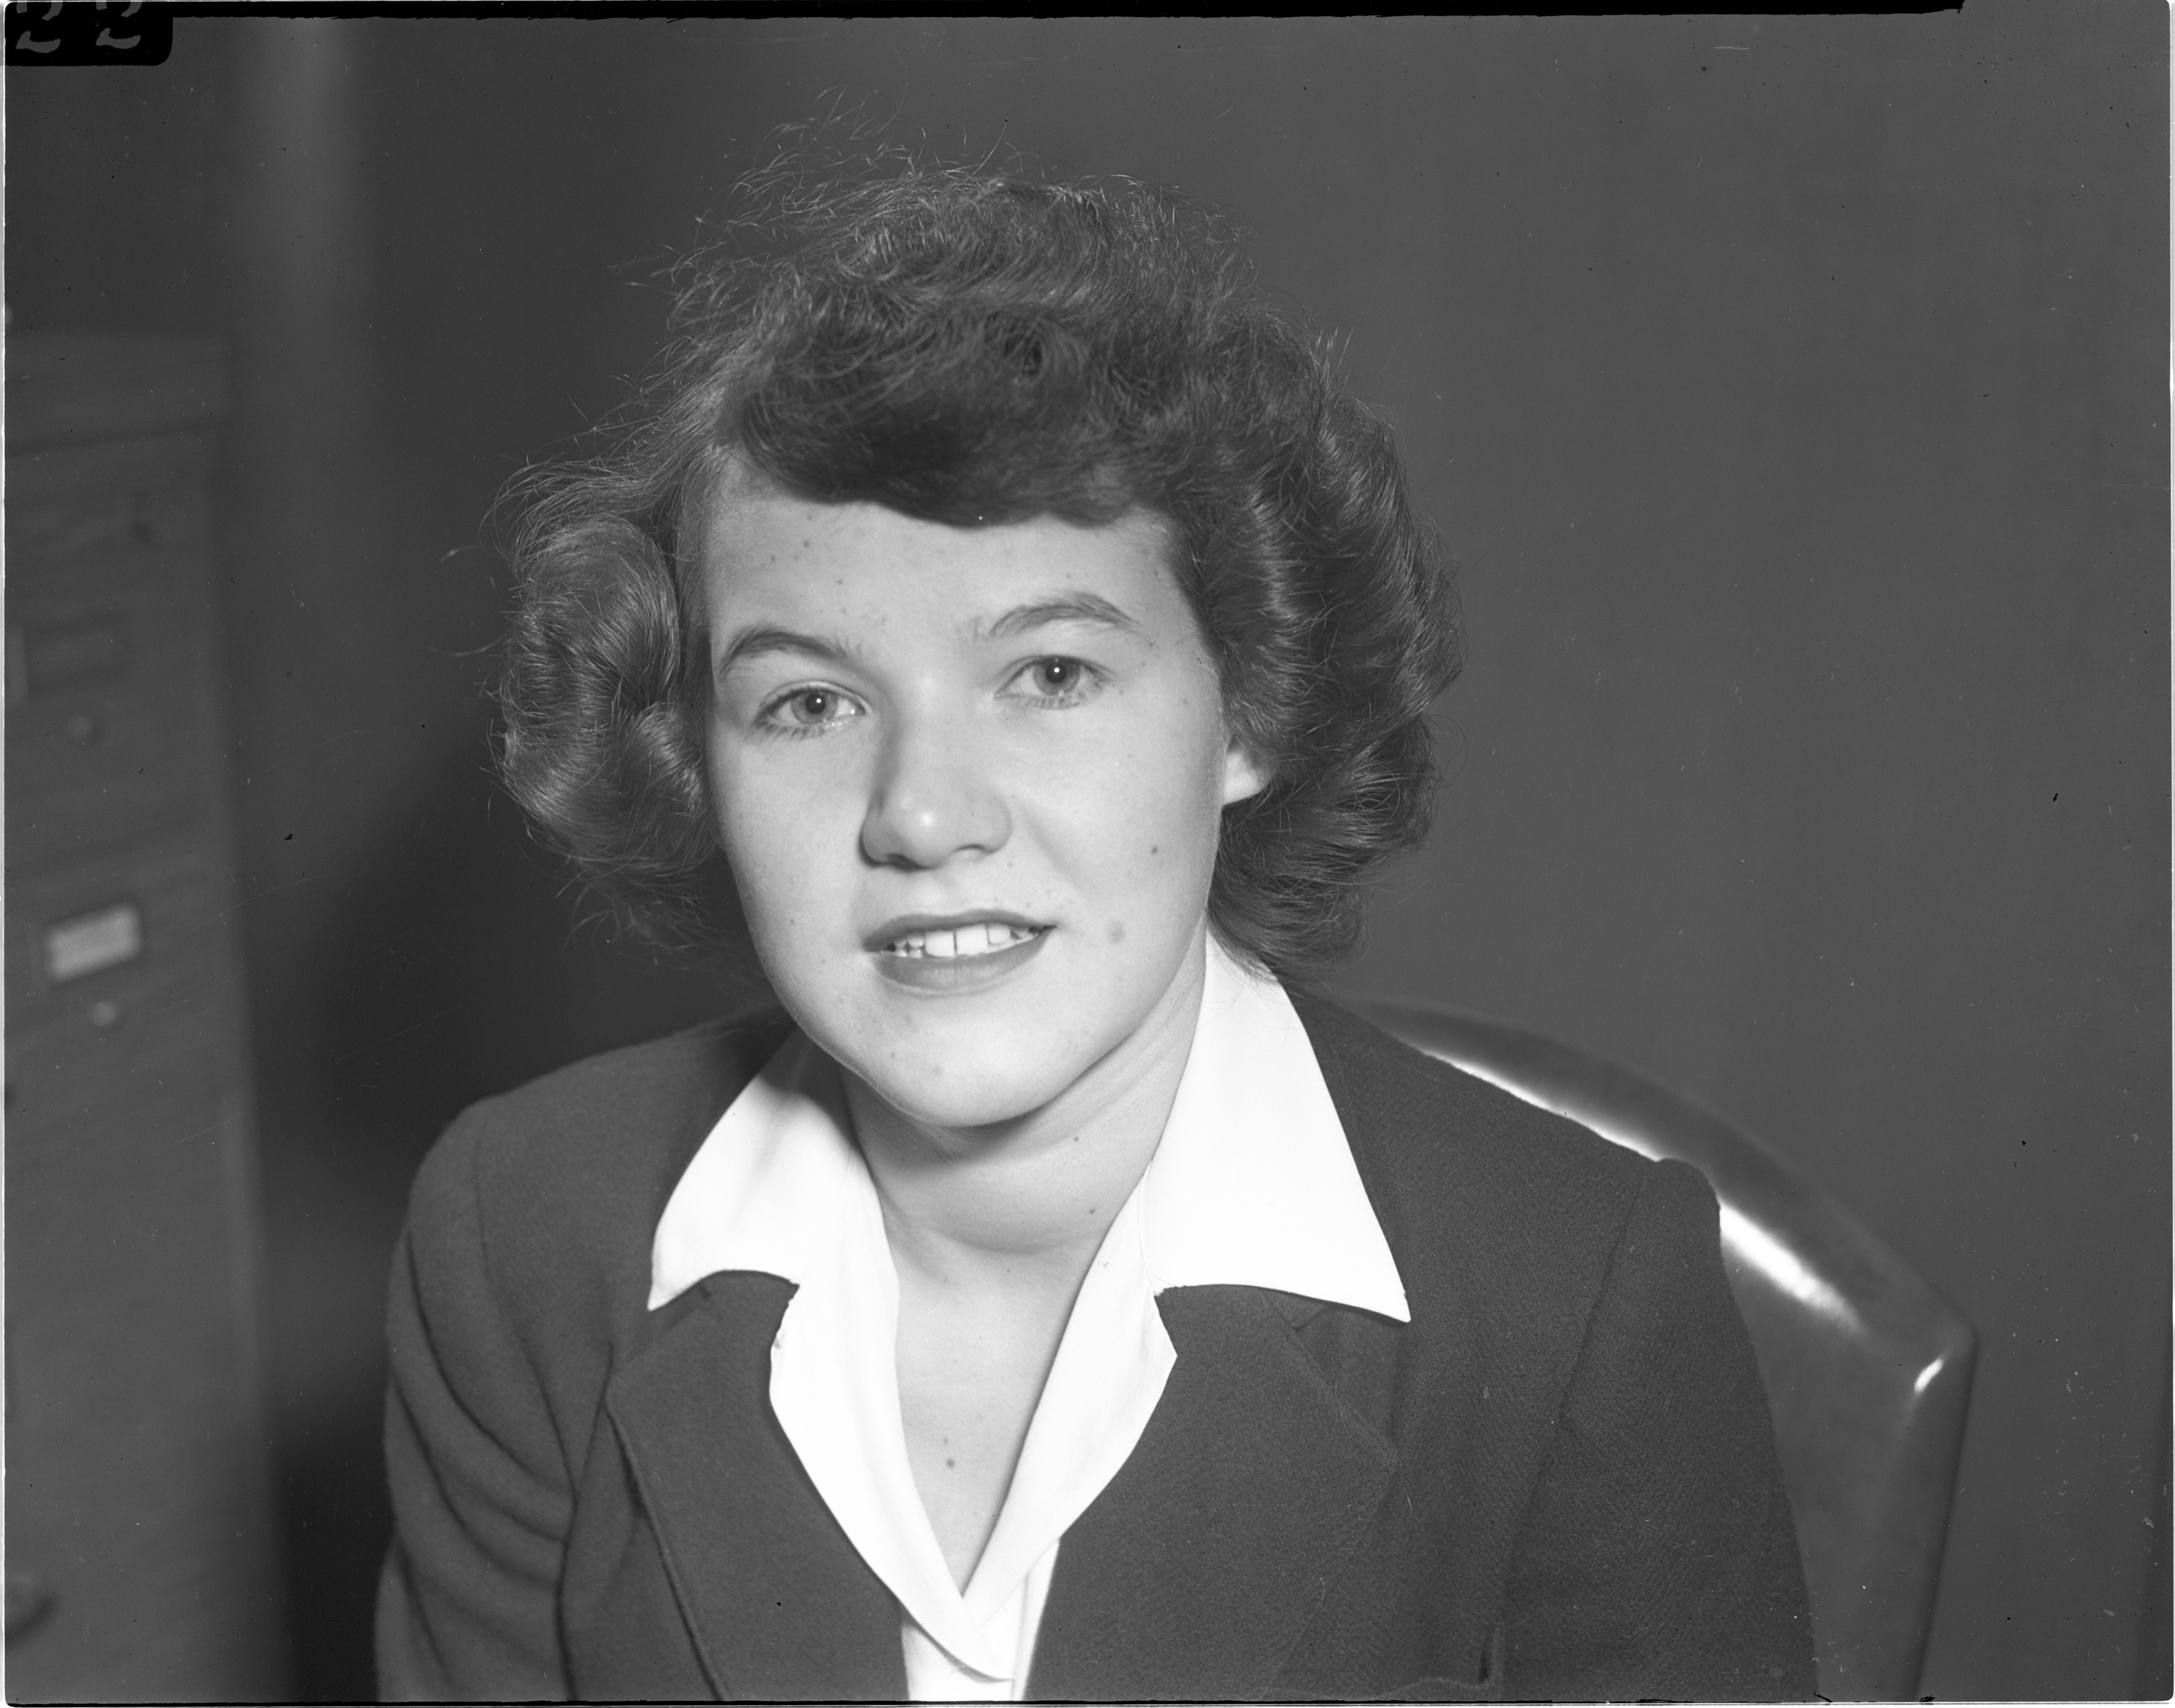 Barbara Lou Eddy - Ann Arbor DeMolay Chapter Sweetheart, September 1942 image